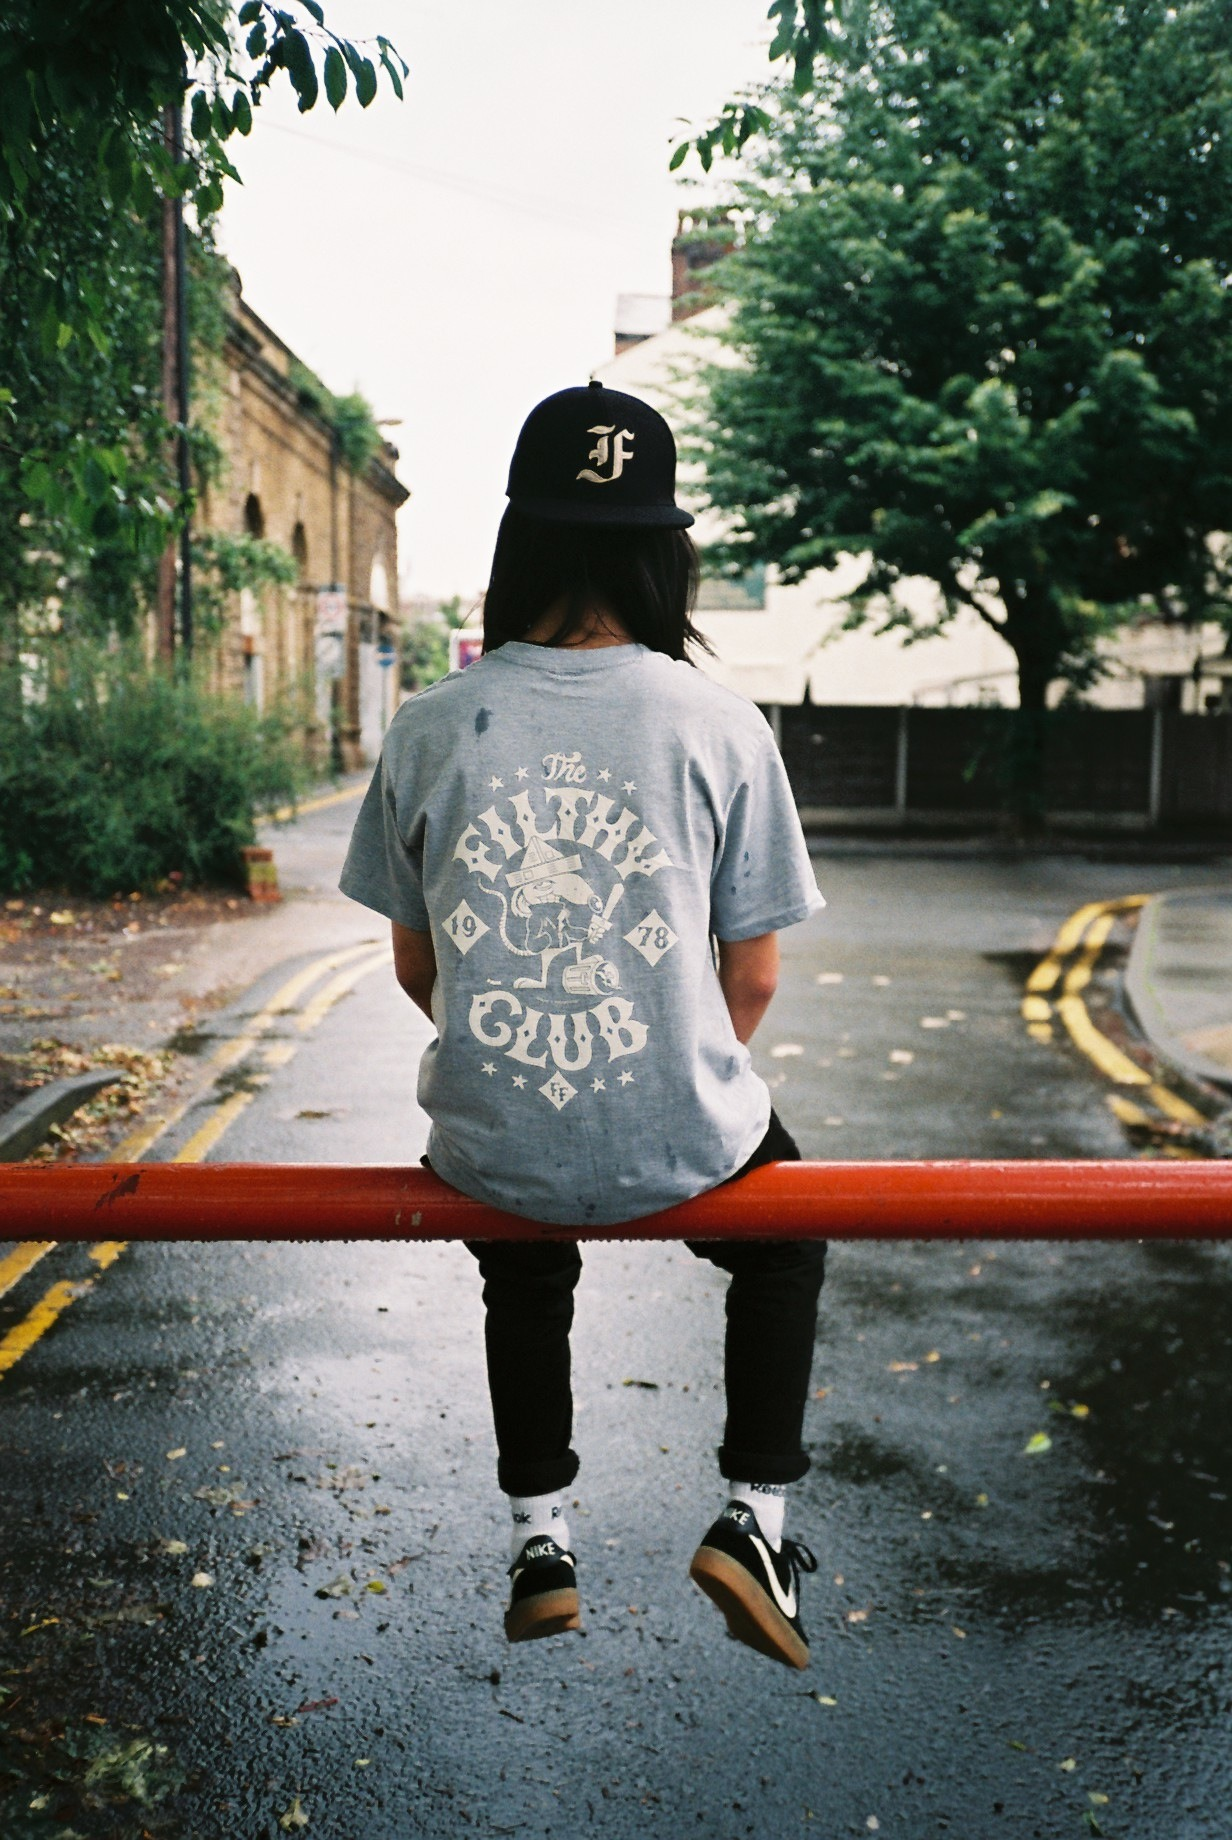 joshuagordonphotography:  Fergus in The Filthy Club tee from FF201201.